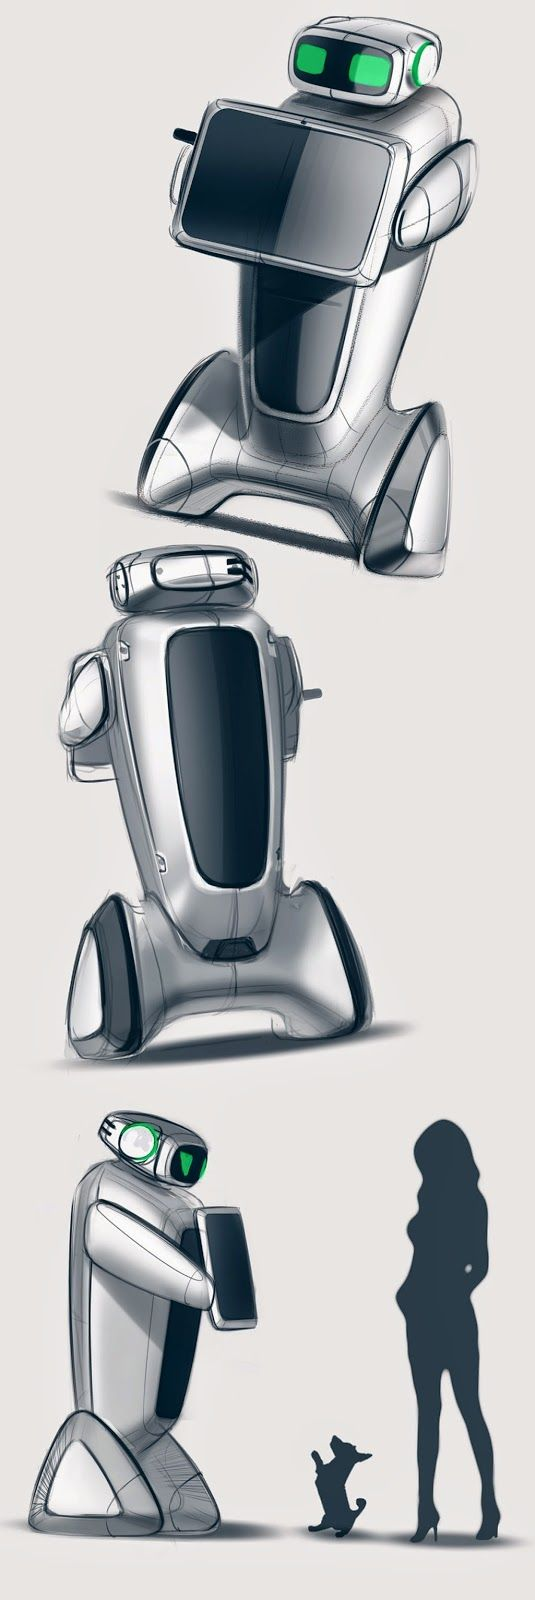 This looks like it would come straight out of Wall-E. I like the simple curve lines in the design.